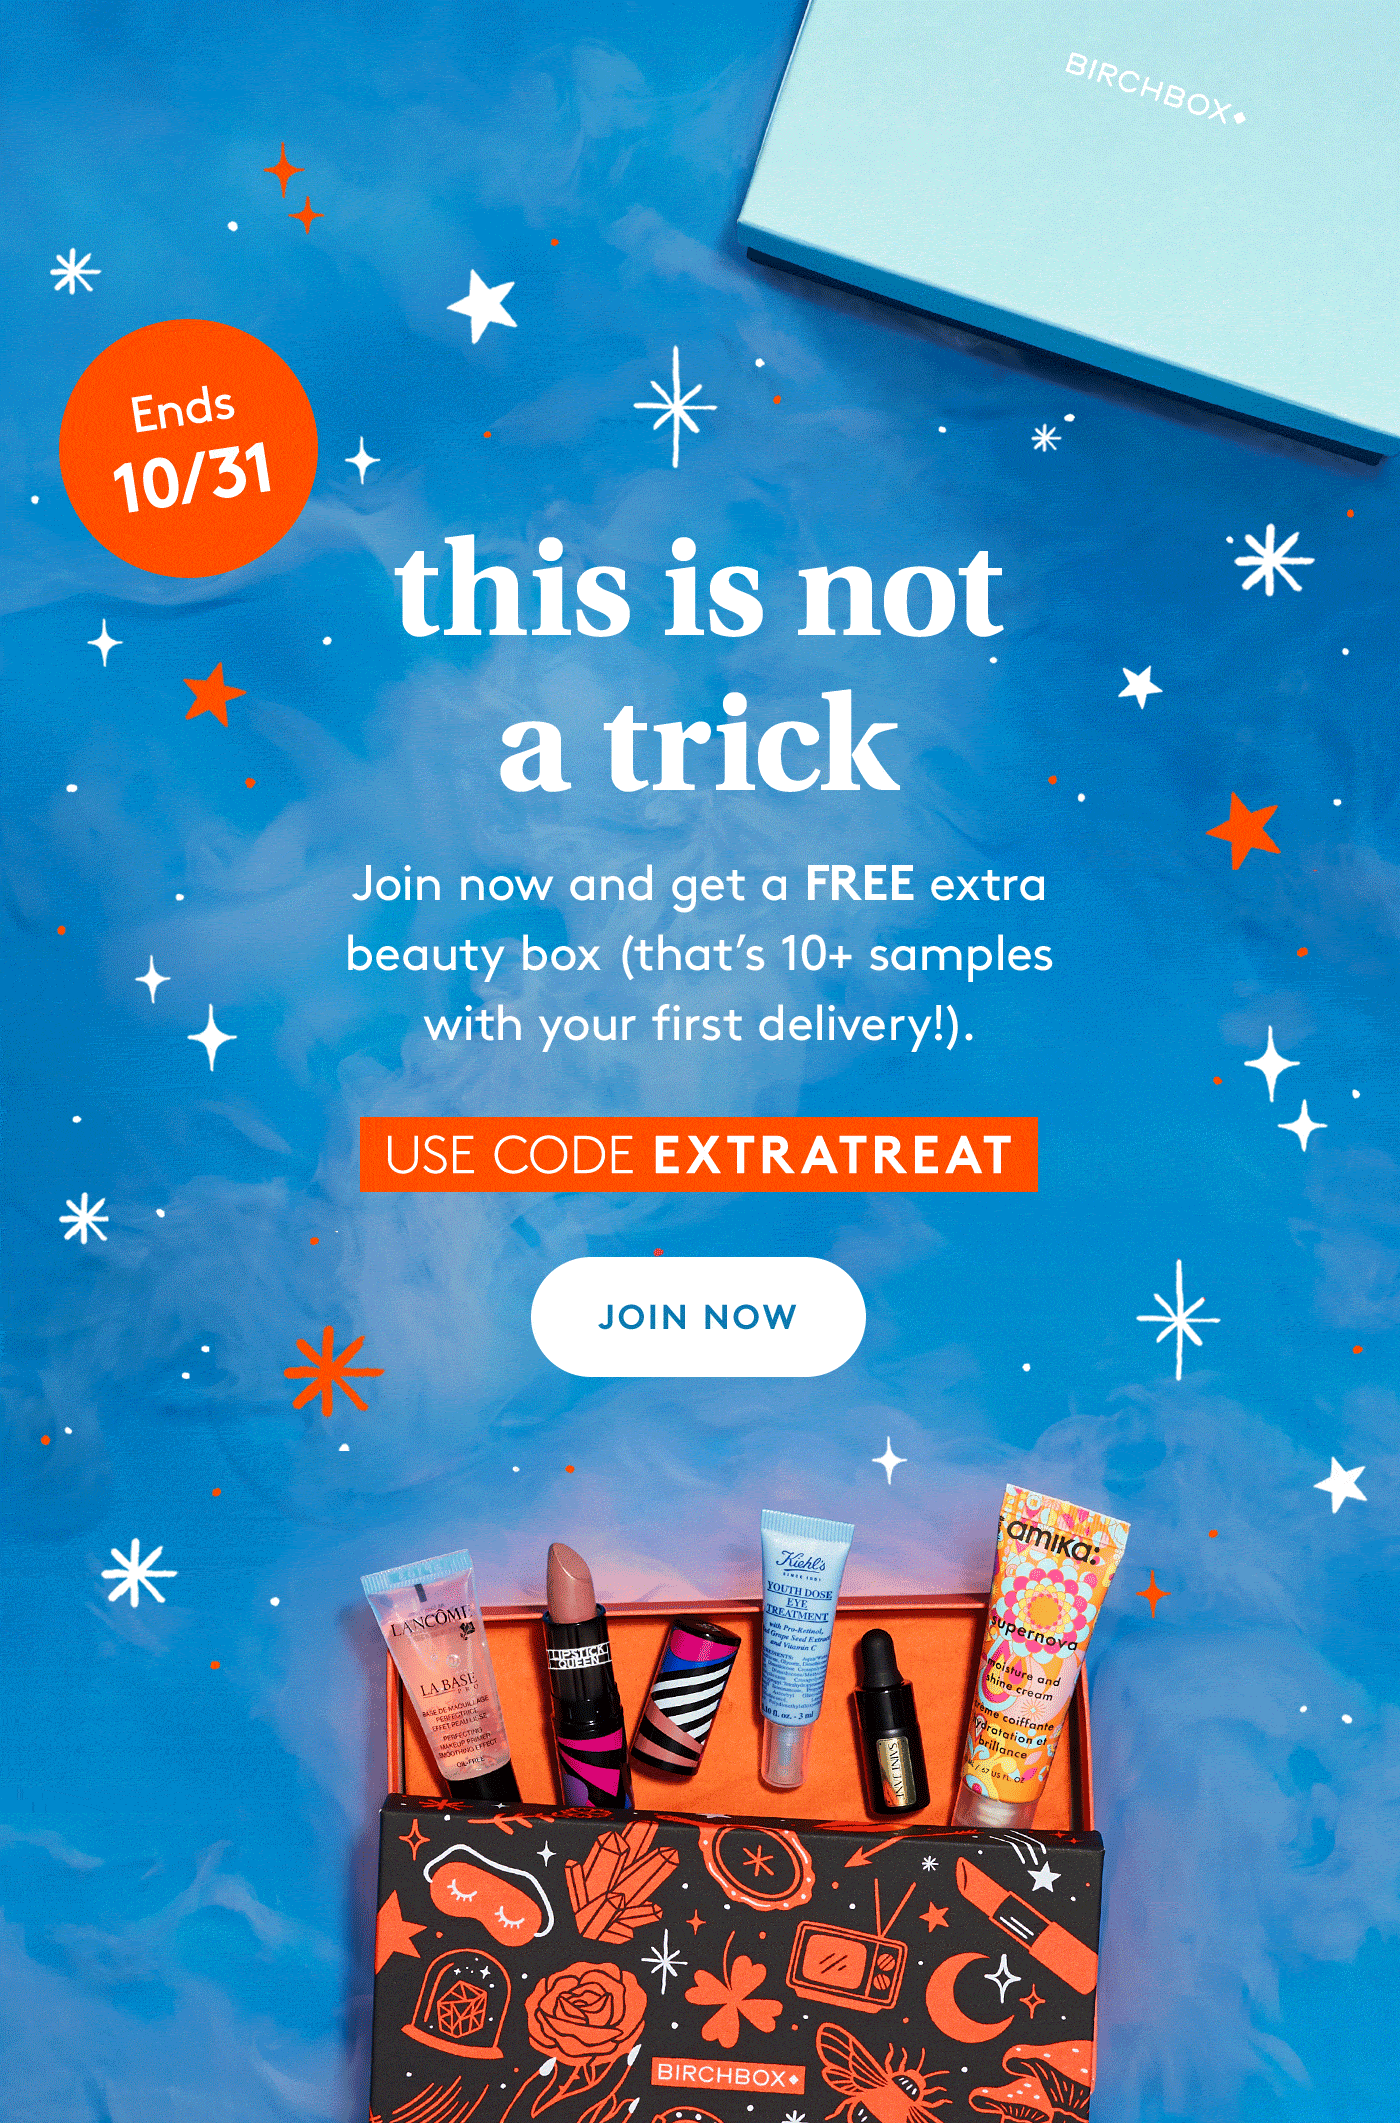 Birchbox Halloween Coupon: FREE Beauty Box with Subscription!